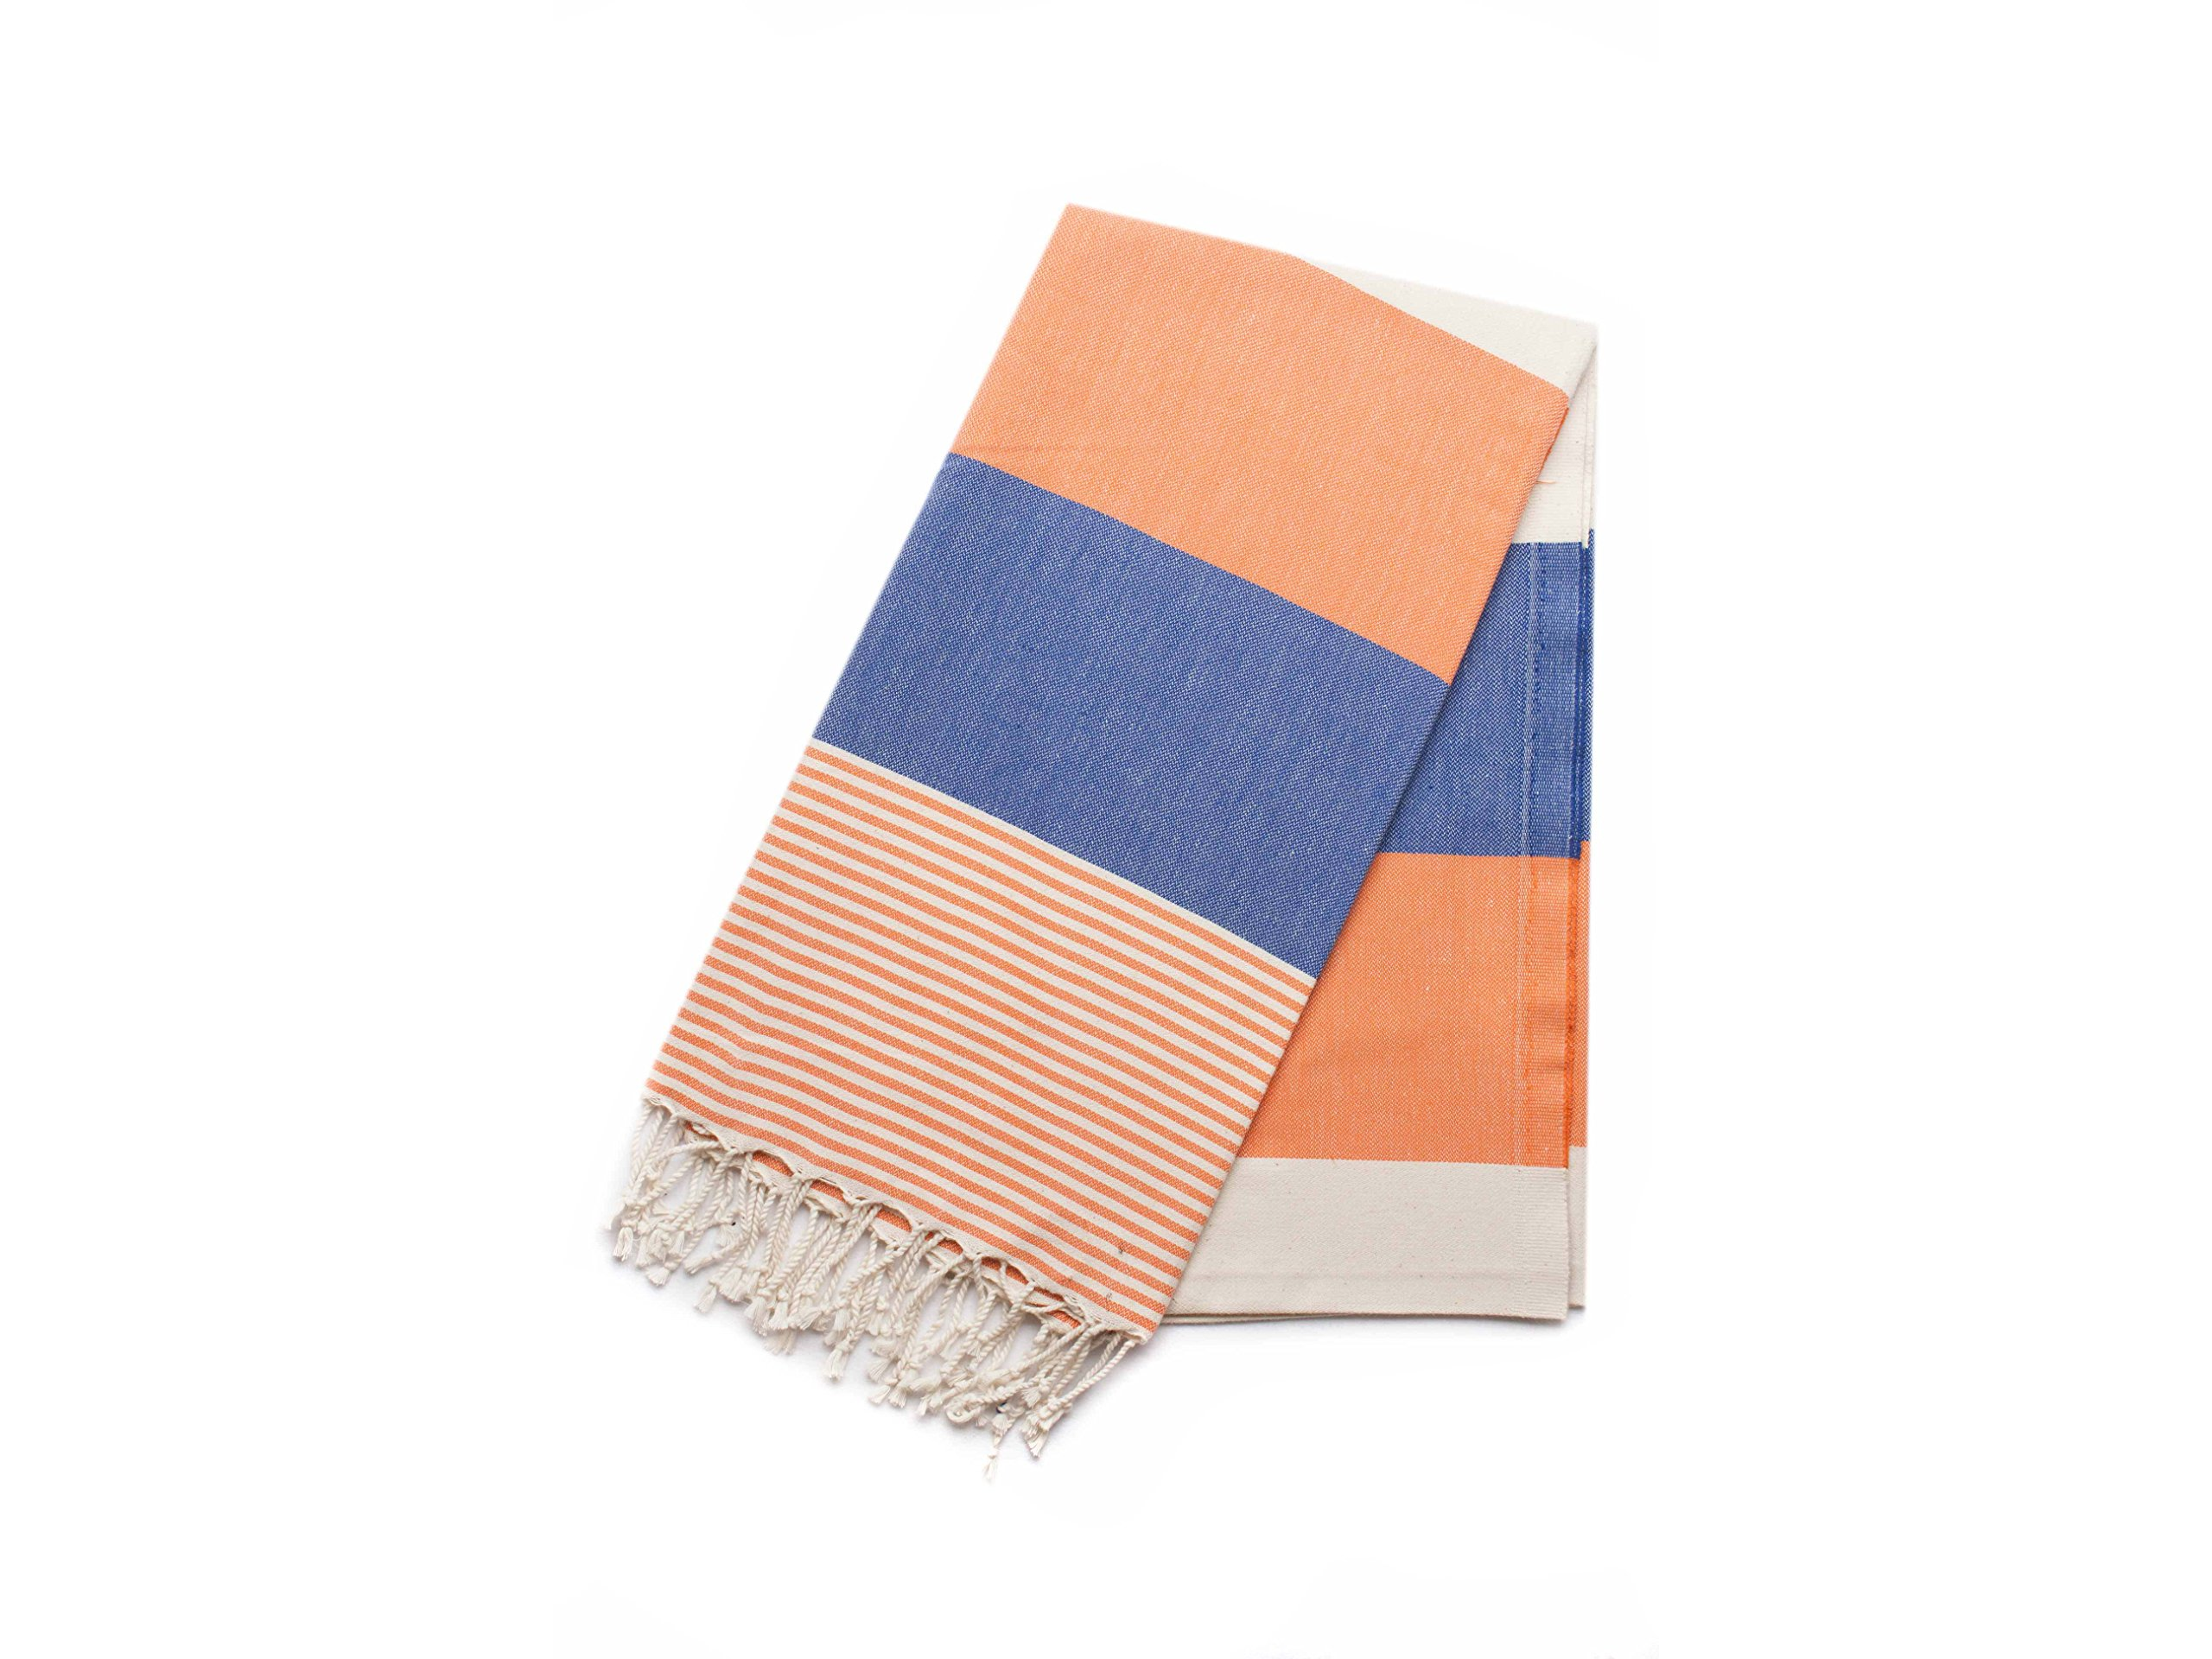 Ahenque 100% Cotton Turkish Towel/Beach Towel/Bath Towel, 37″ x 73″(95 cm x 185 cm), Orange&Blue - Ahenque towels are made of natural cotton and handwoven on looms with traditional methods which makes it sturdy for longer uses Natural, eco-friendly Peshtemal/Turkish Towel dries quickly and absorbs much water compare to classic towels. Gets softer in each wash. Colours: Blue&Orange&Cream, Peshtamel/Towel Size: 37″ x 73″ ~ 95 cm x 185 cm - bathroom-linens, bathroom, bath-towels - 81jGV1ZohHL -